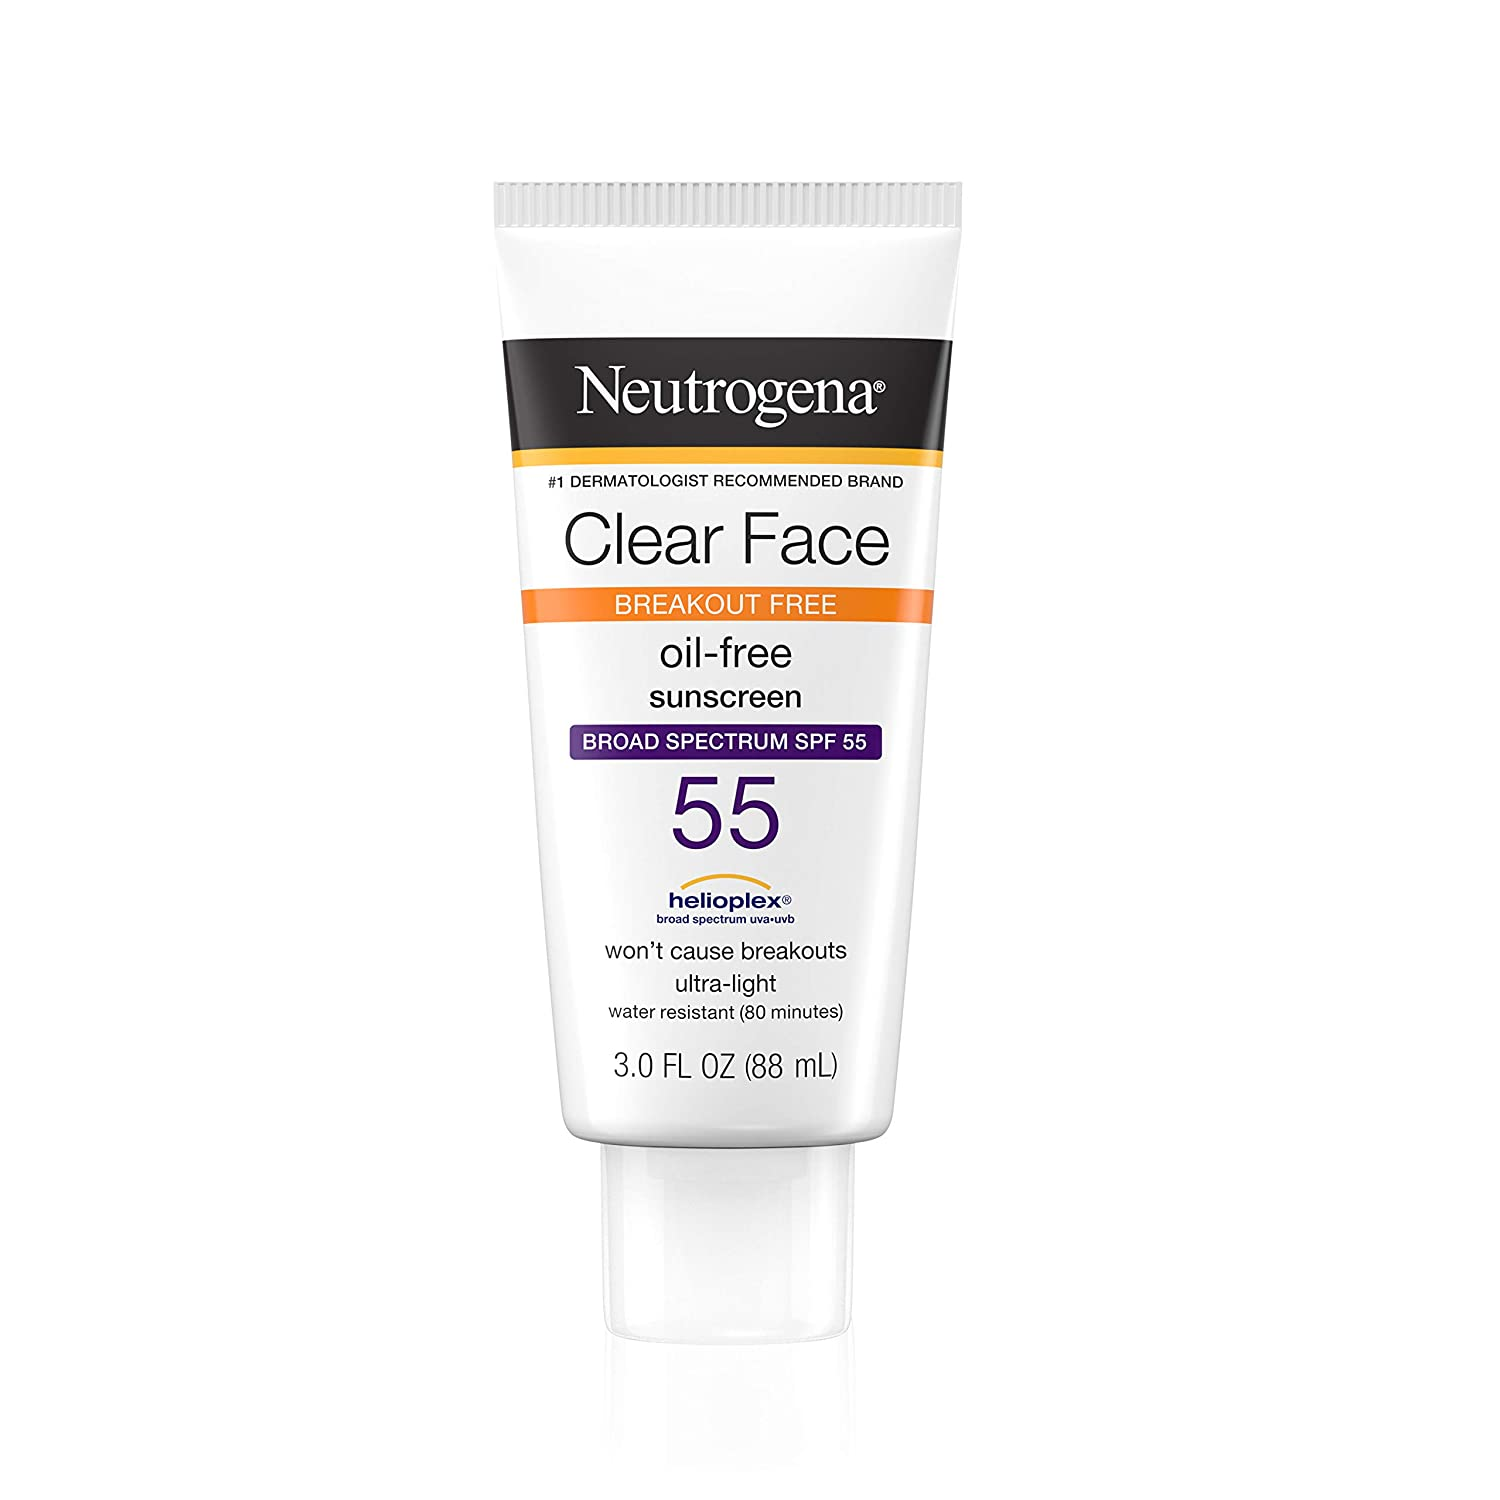 Neutrogena Clear Face Liquid Lotion Sunscreen for Acne-Prone Skin, Broad Spectrum SPF 55 with Helioplex Technology, Oil-Free, Fragrance-Free & Non-Comedogenic, 3 fl. oz